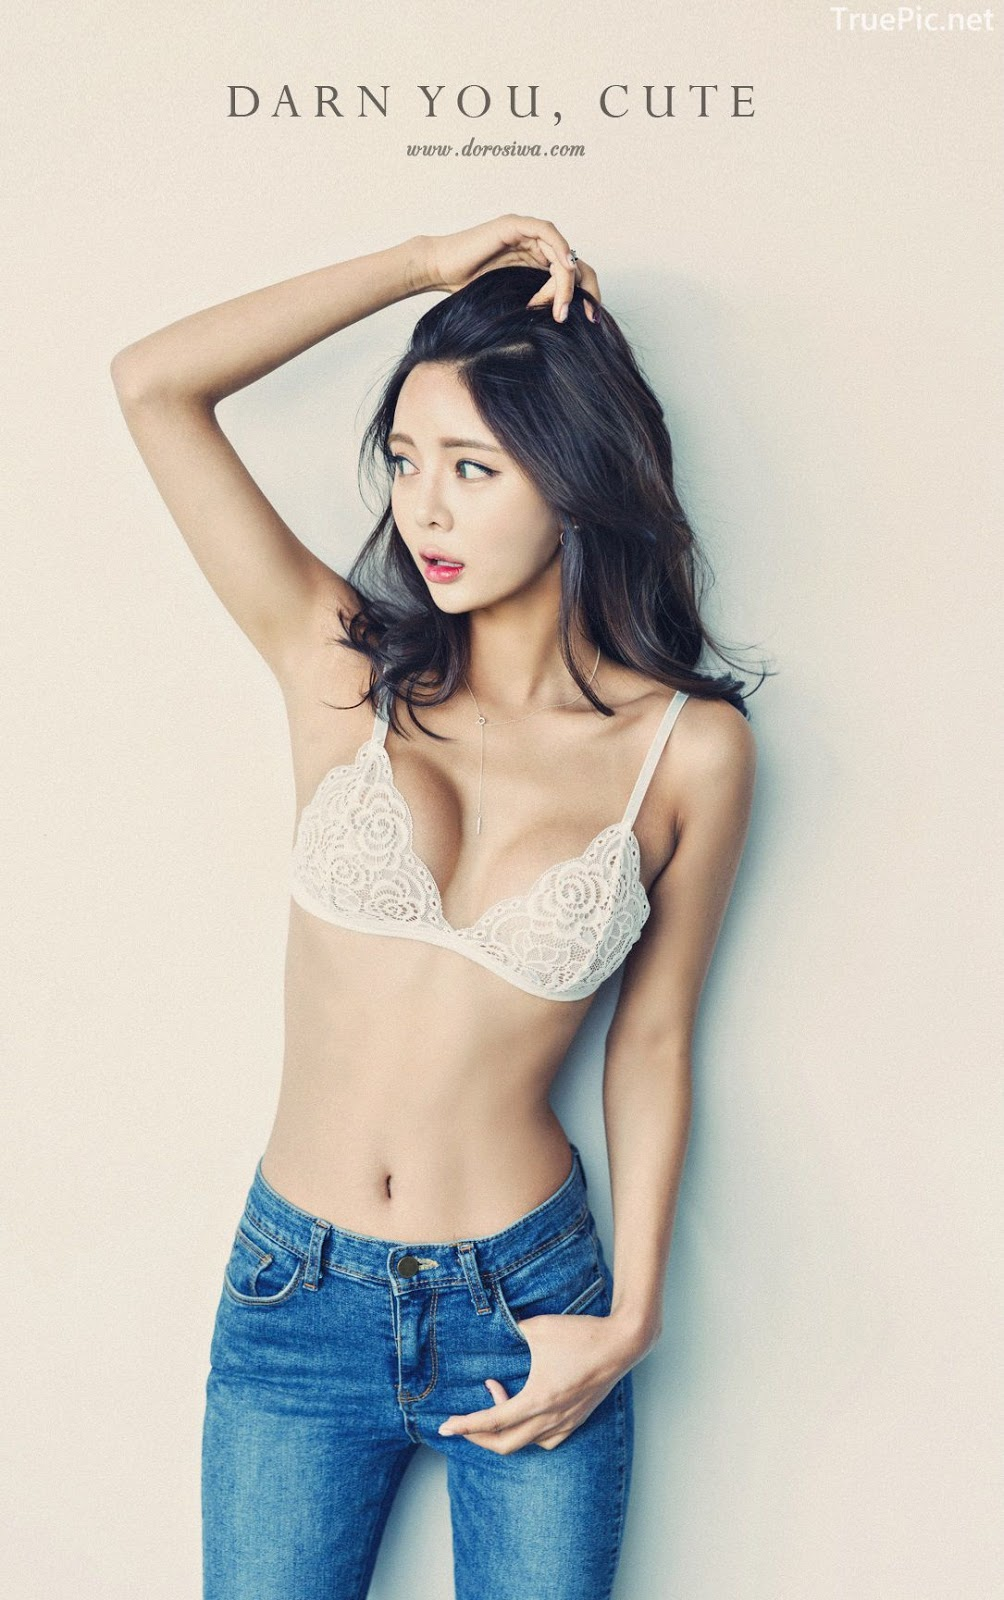 Korean Lingerie Queen - Kim Bo Ram - There's So Many Reason To Love You - TruePic.net- Picture 7